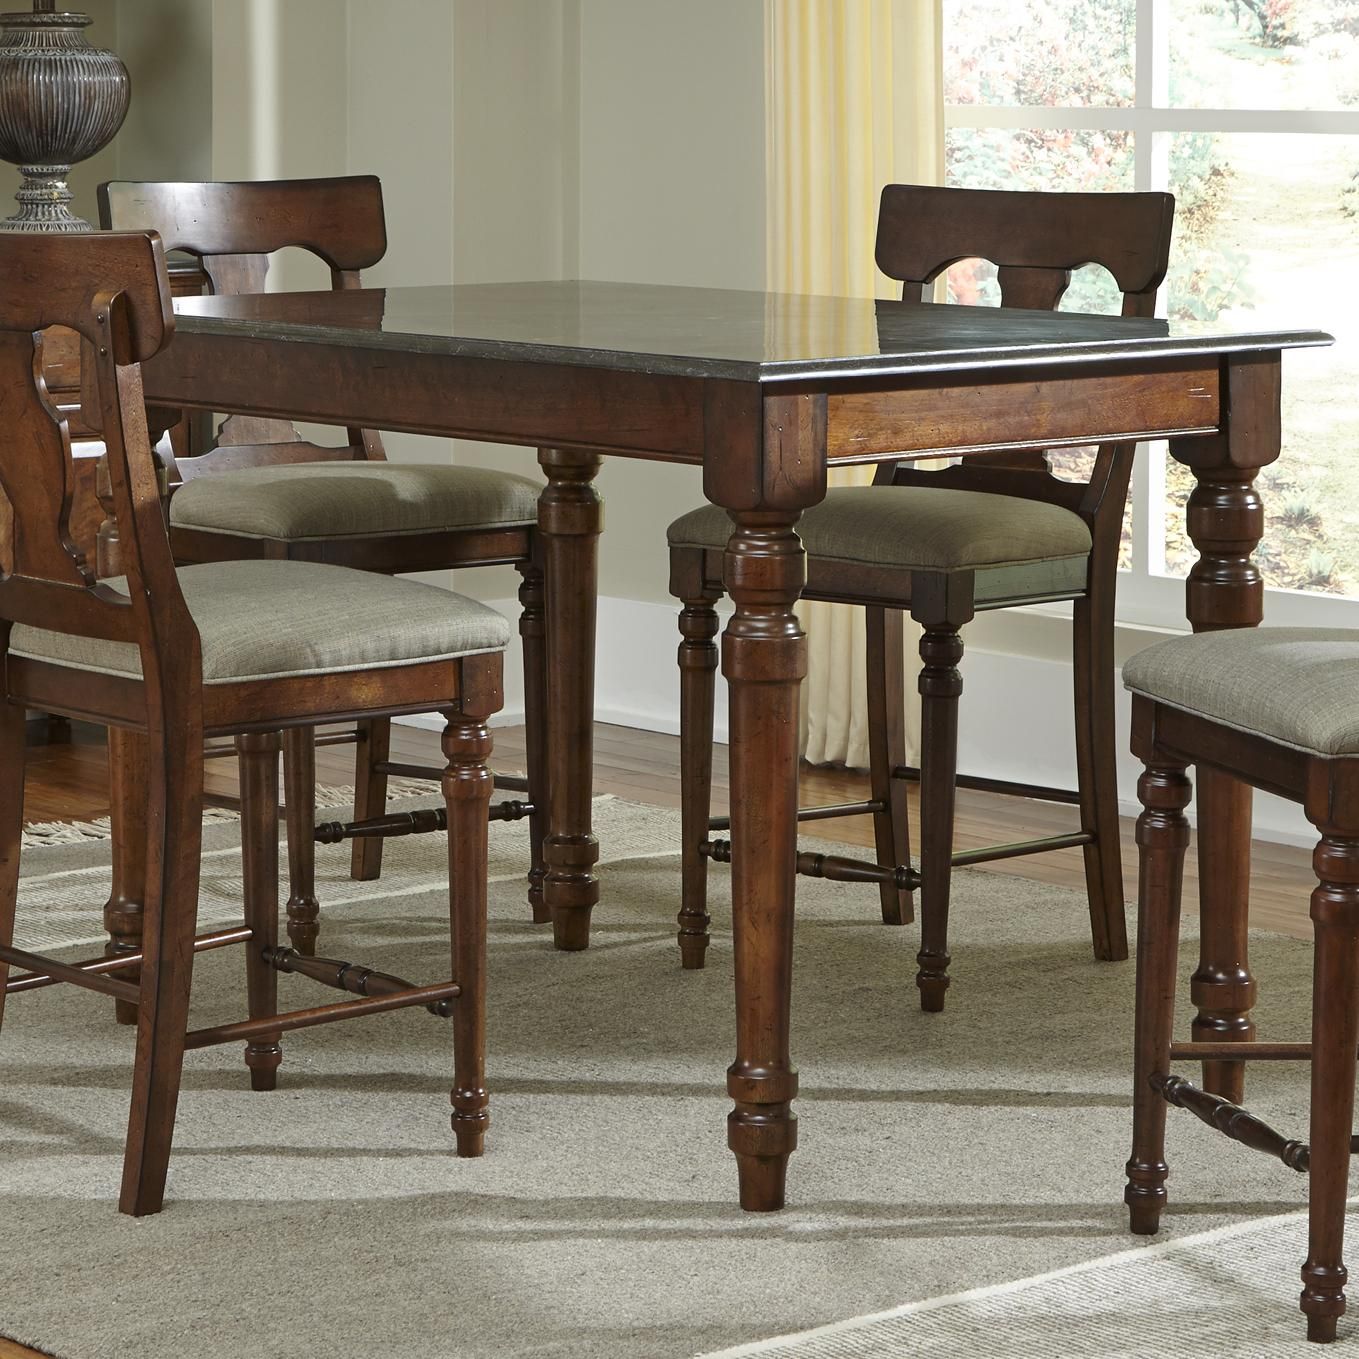 AAmerica Andover Park Gathering Height Table - Item Number: ADV-AC-6-50-0